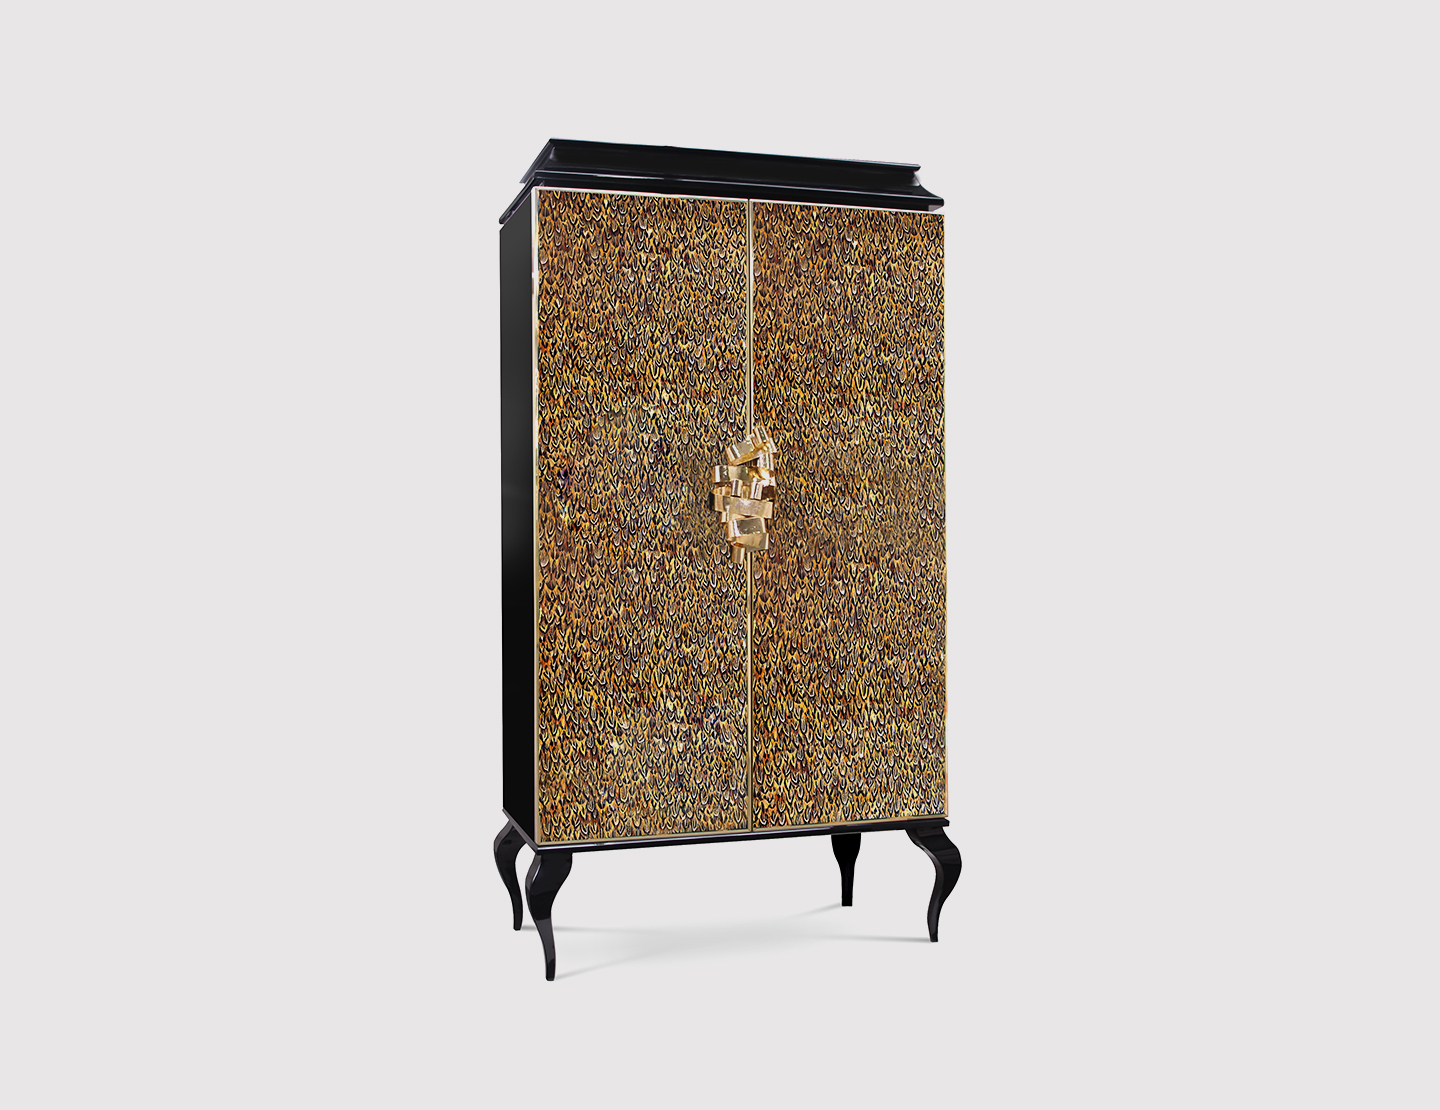 luxury cabinets The Most Detailed Luxury Cabinets 5 The Most Detailed Luxury Cabinets 1